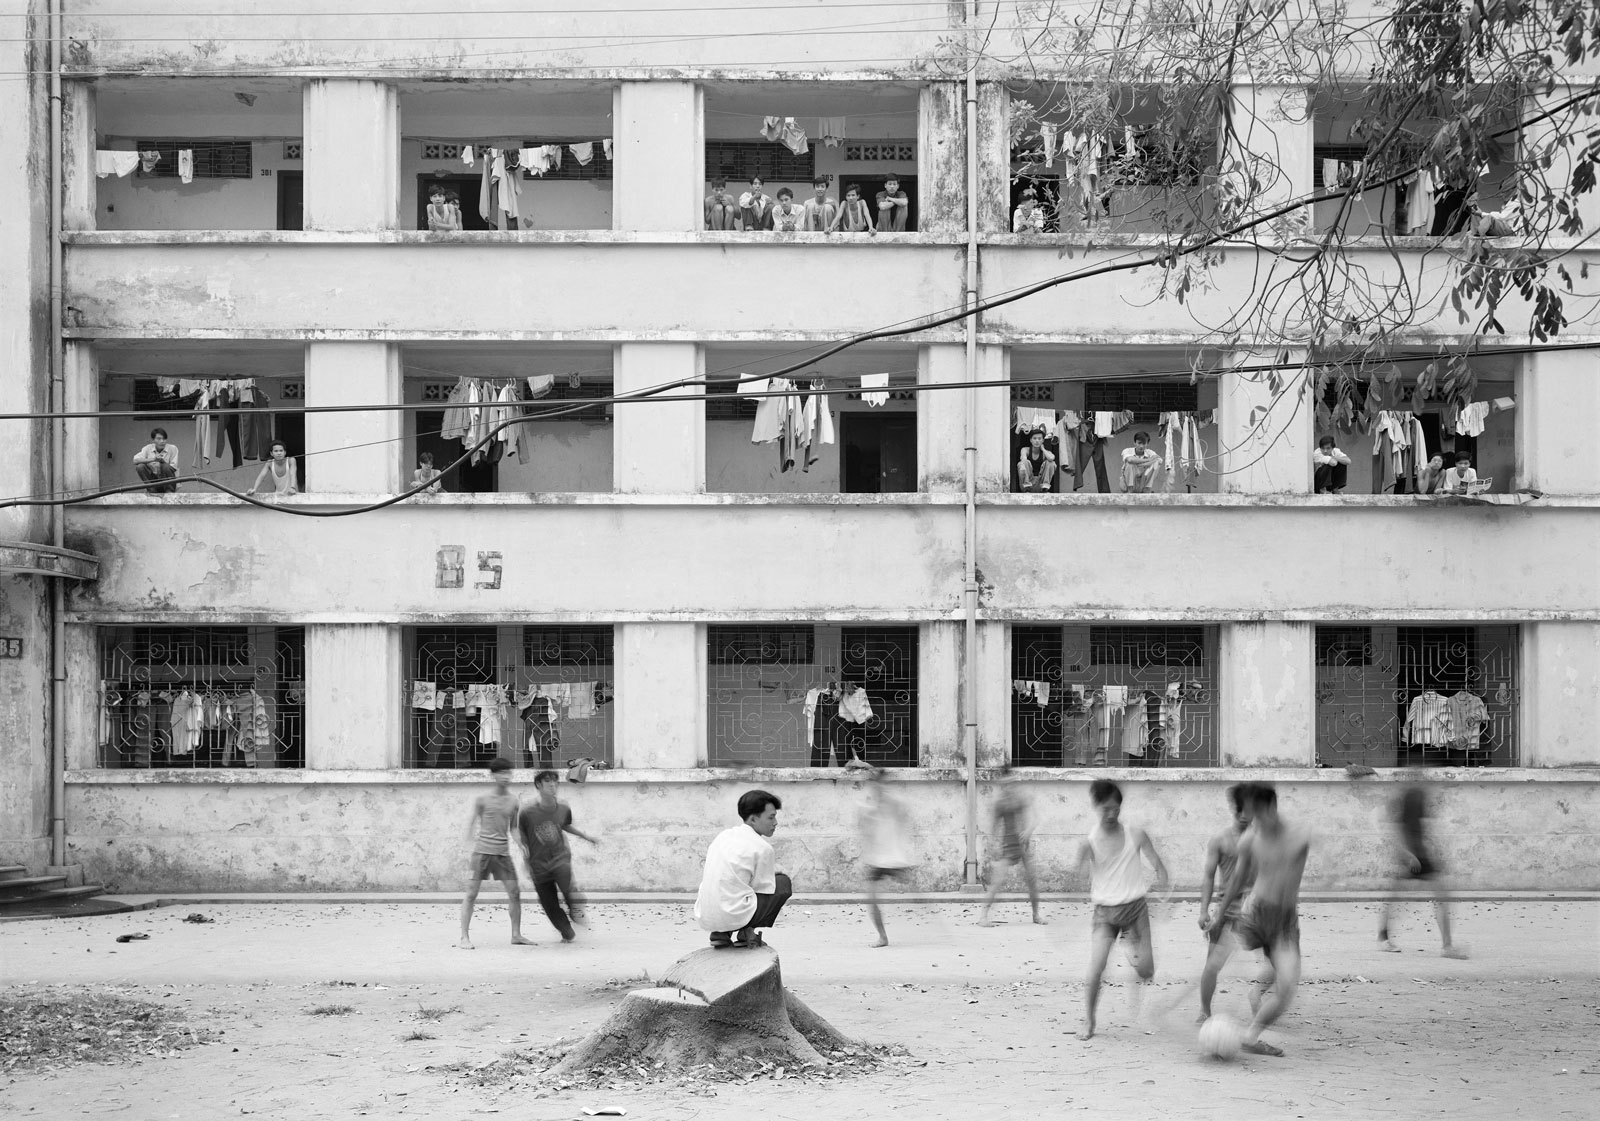 Kids playing outside an apartment complex, in black and white